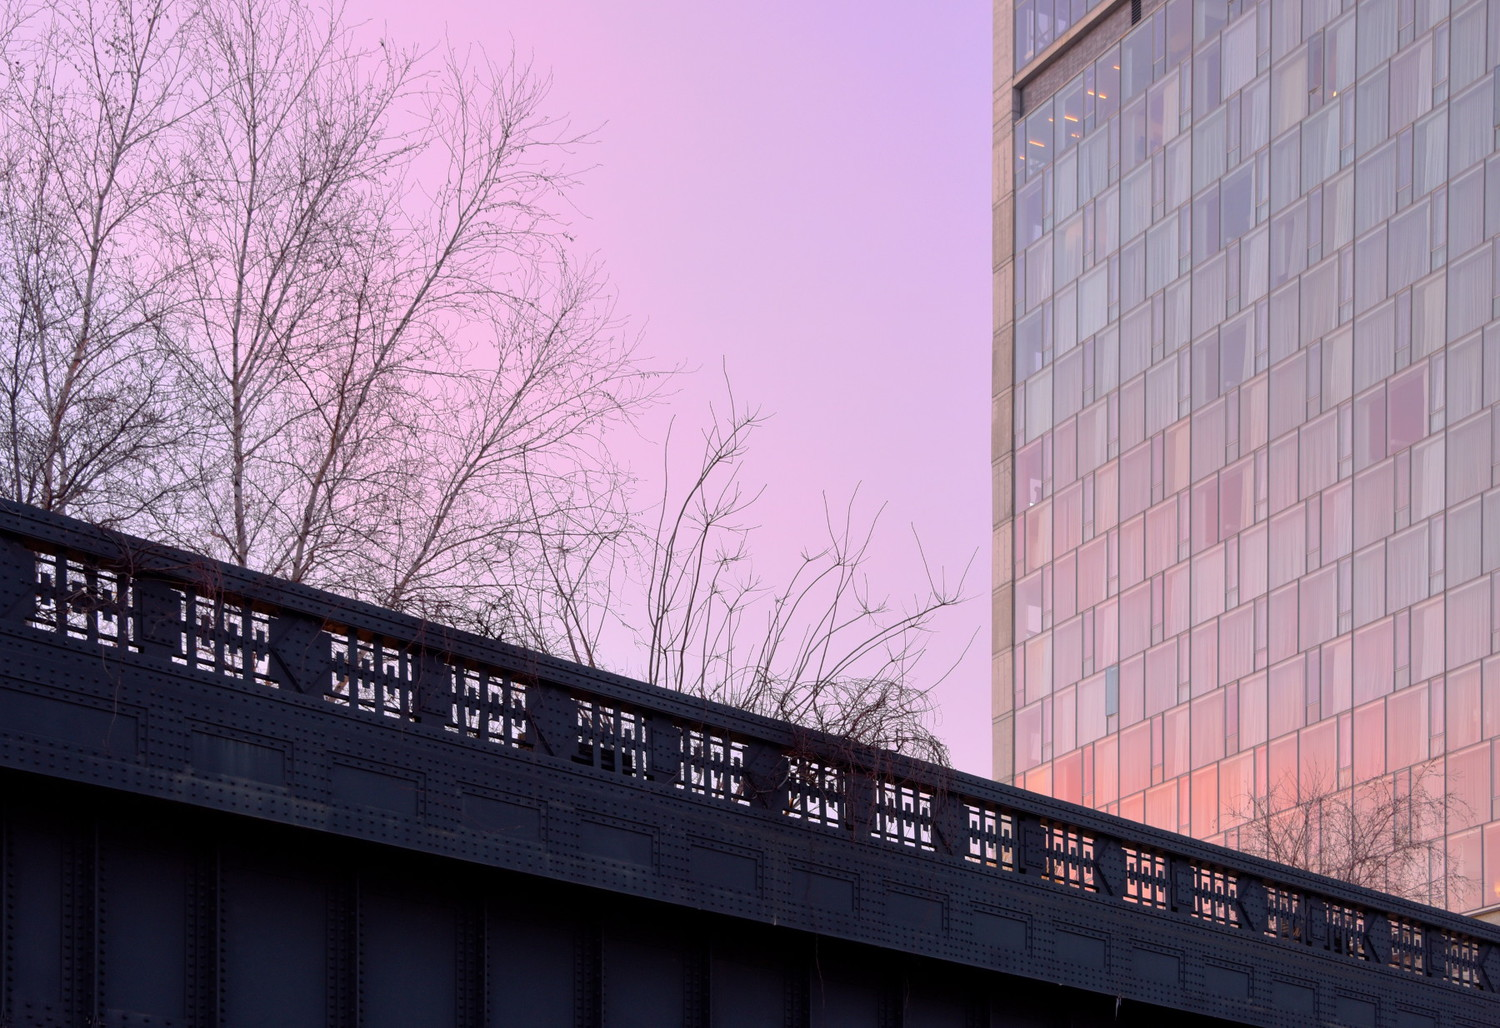 Sunset At the High Line | The sky turned a lovely color tonight as the sun set. It wasn't particularly dramatic, but everything was bathed in this soft, mauve glow.